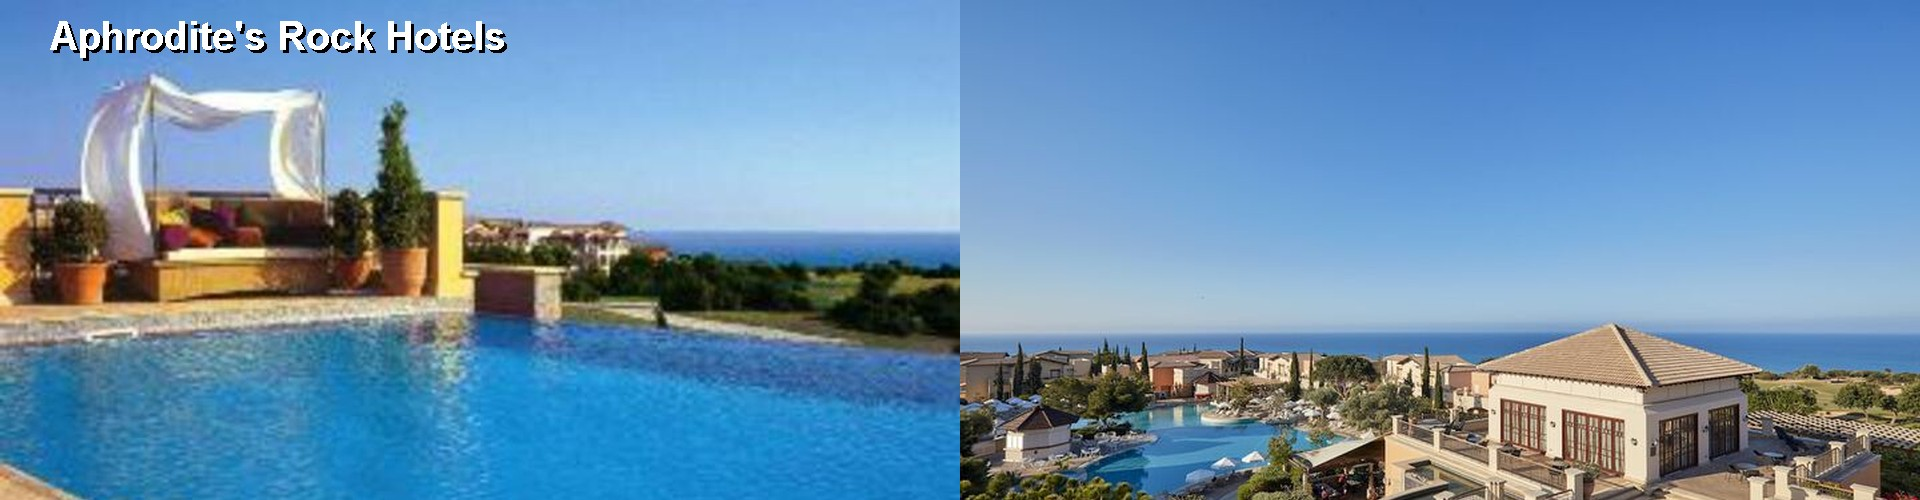 5 Best Hotels near Aphrodite's Rock